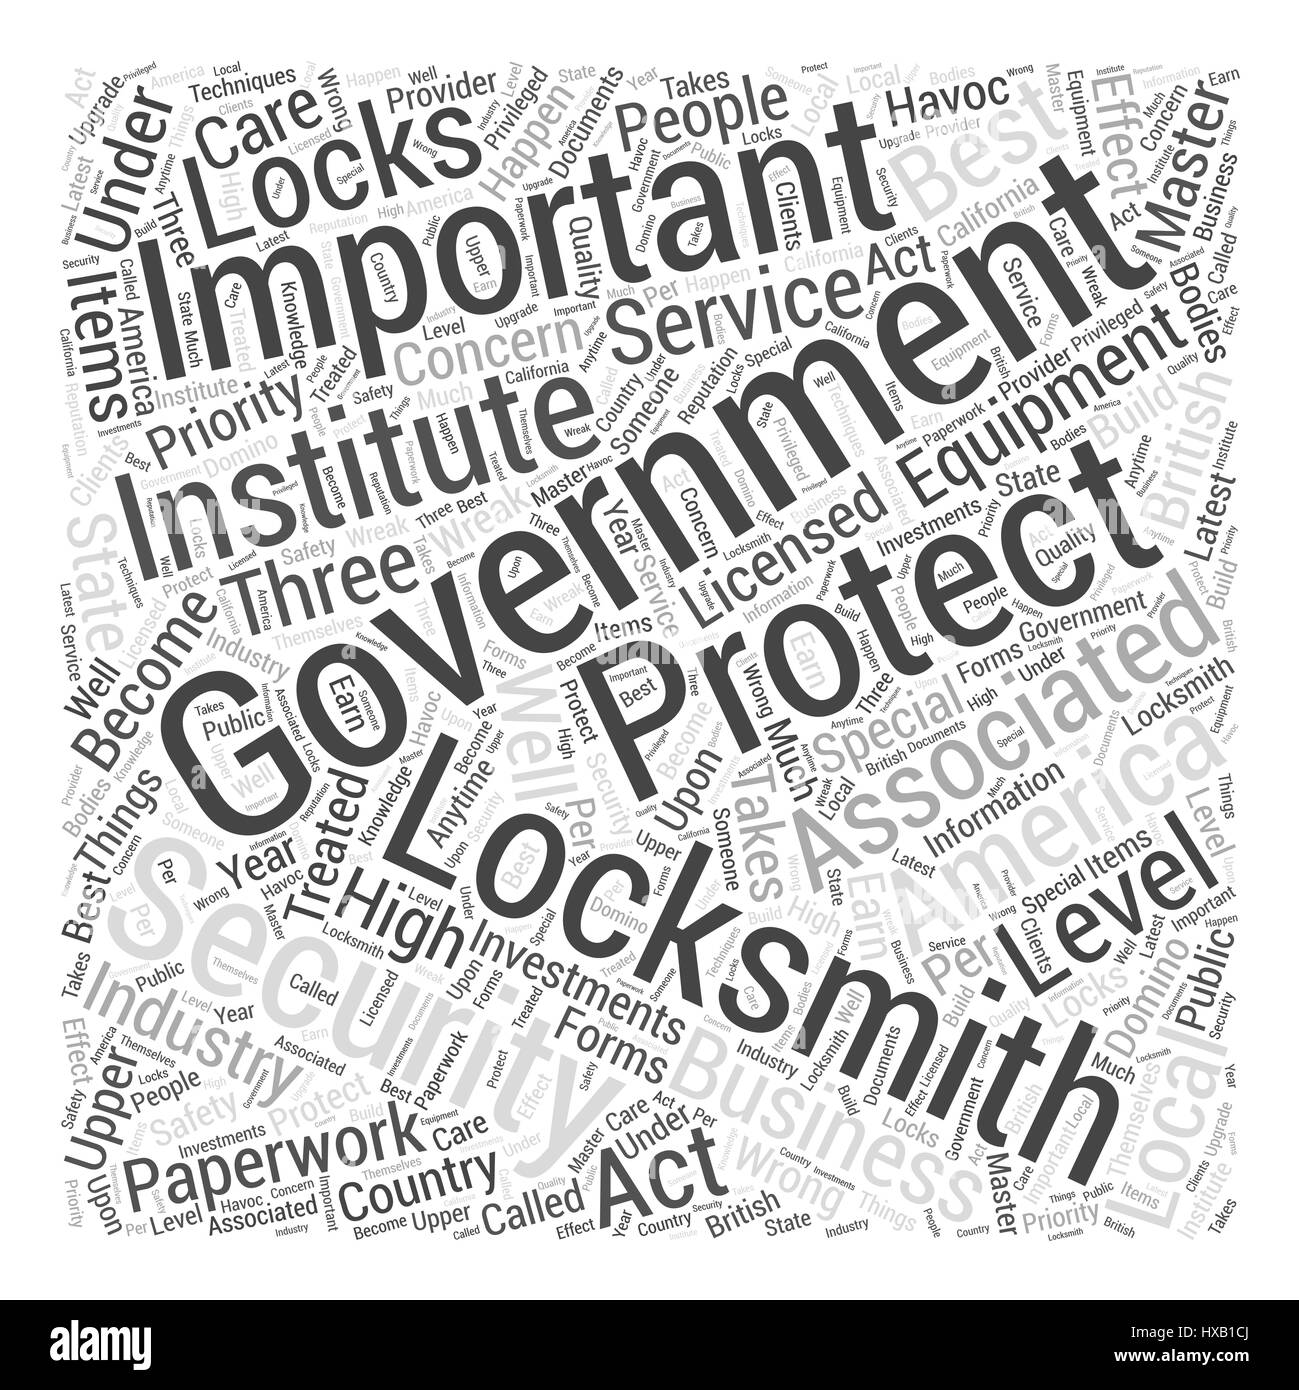 Government Locksmiths Word Cloud Concept - Stock Vector